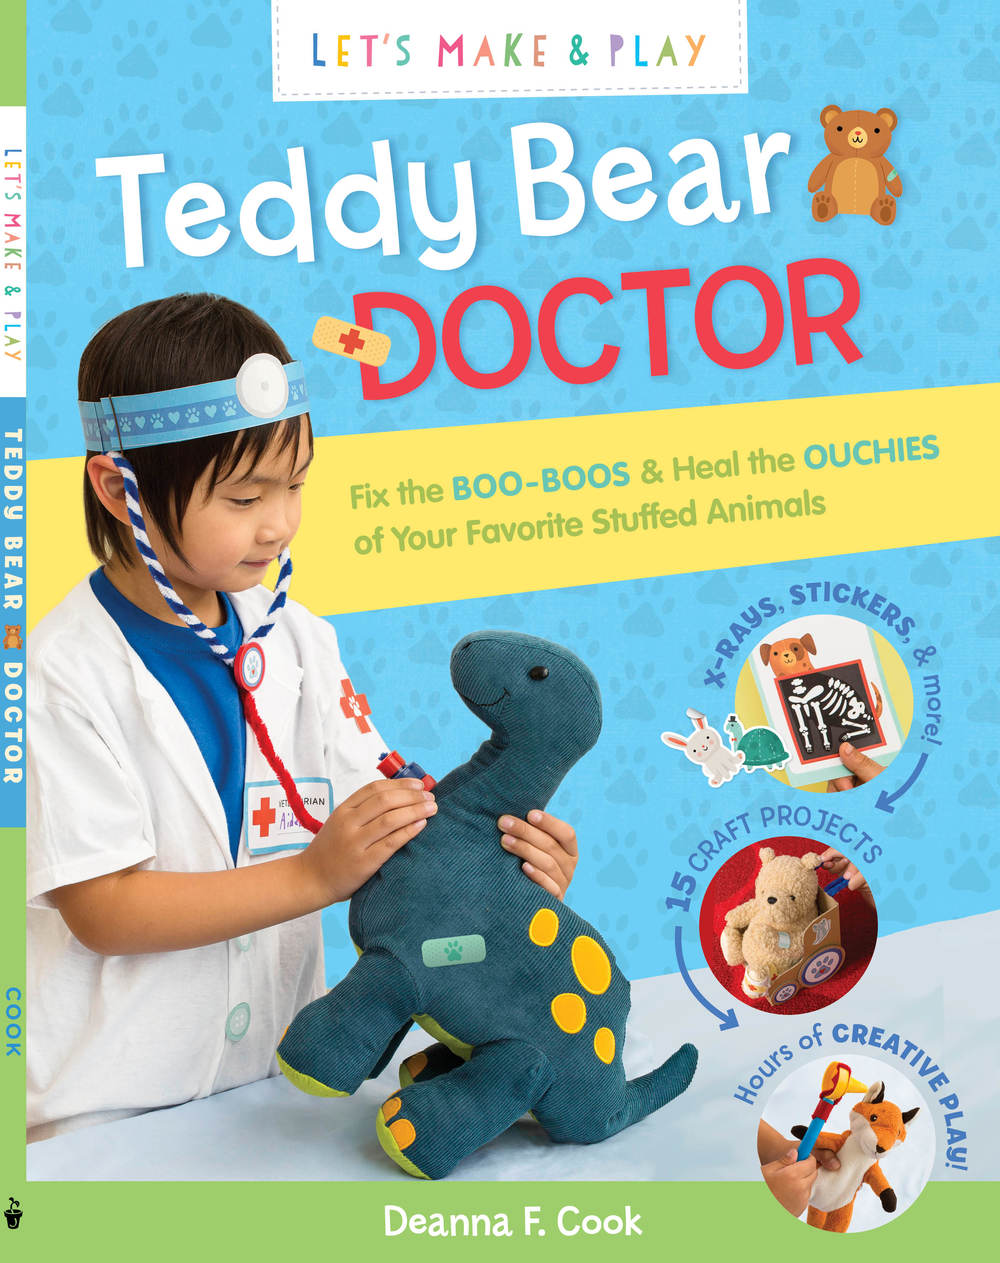 Let's Make and Play: Teddy Bear Doctor with Author Deanna F. Cook